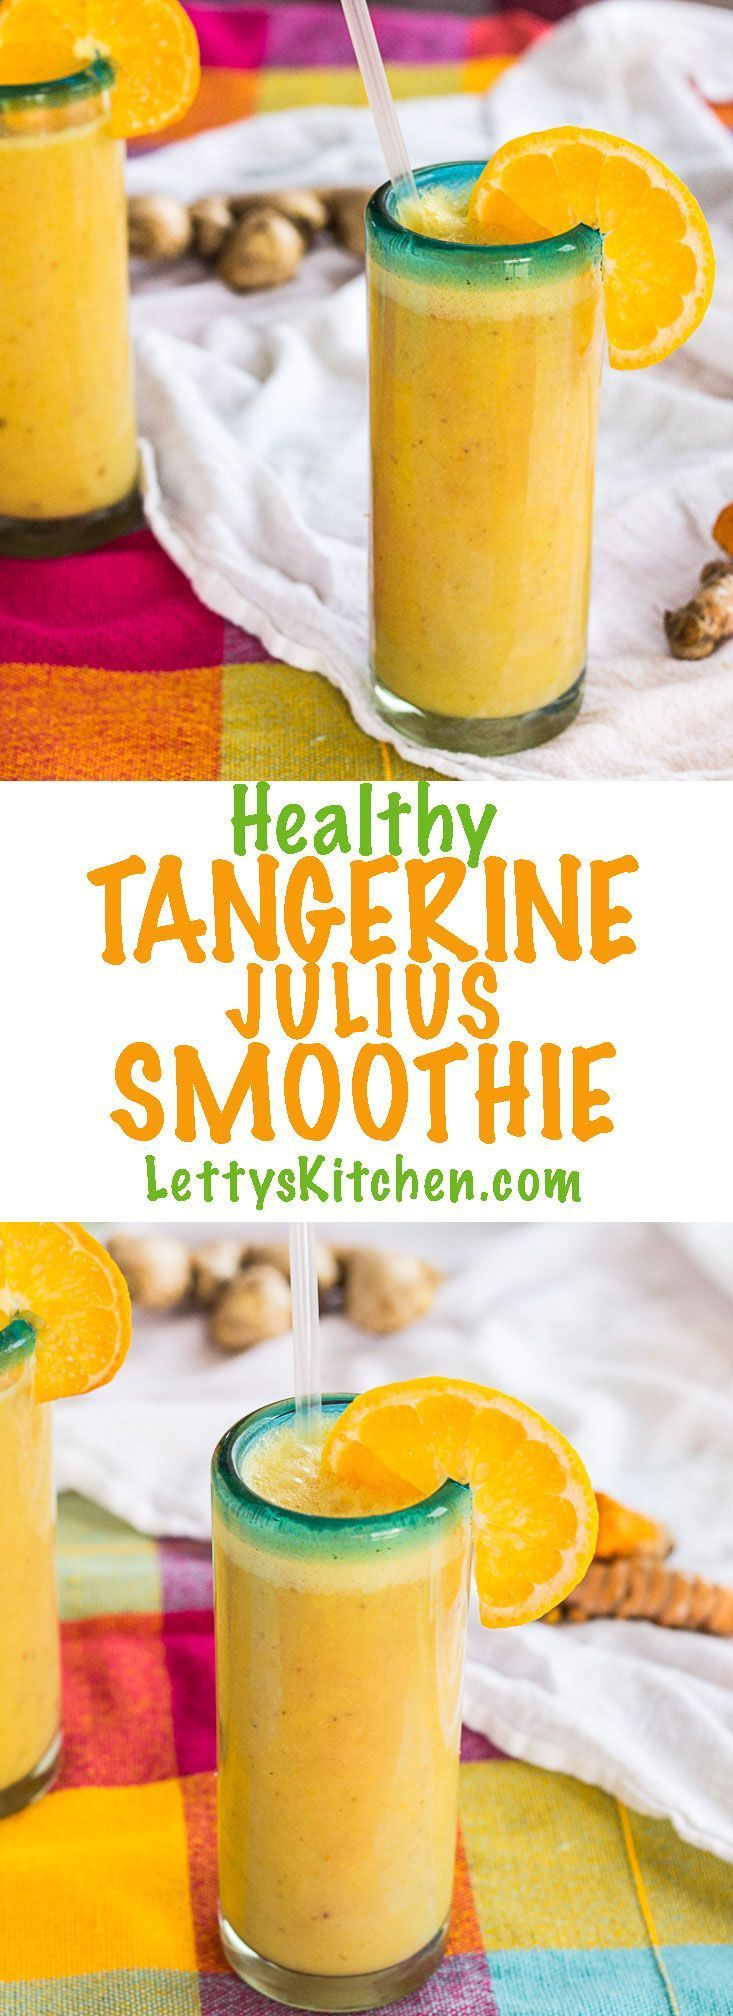 Vegan tangerine smoothie, healthy with almond milk, dates, turmeric and ginger with fresh squeezed tangerine julius.